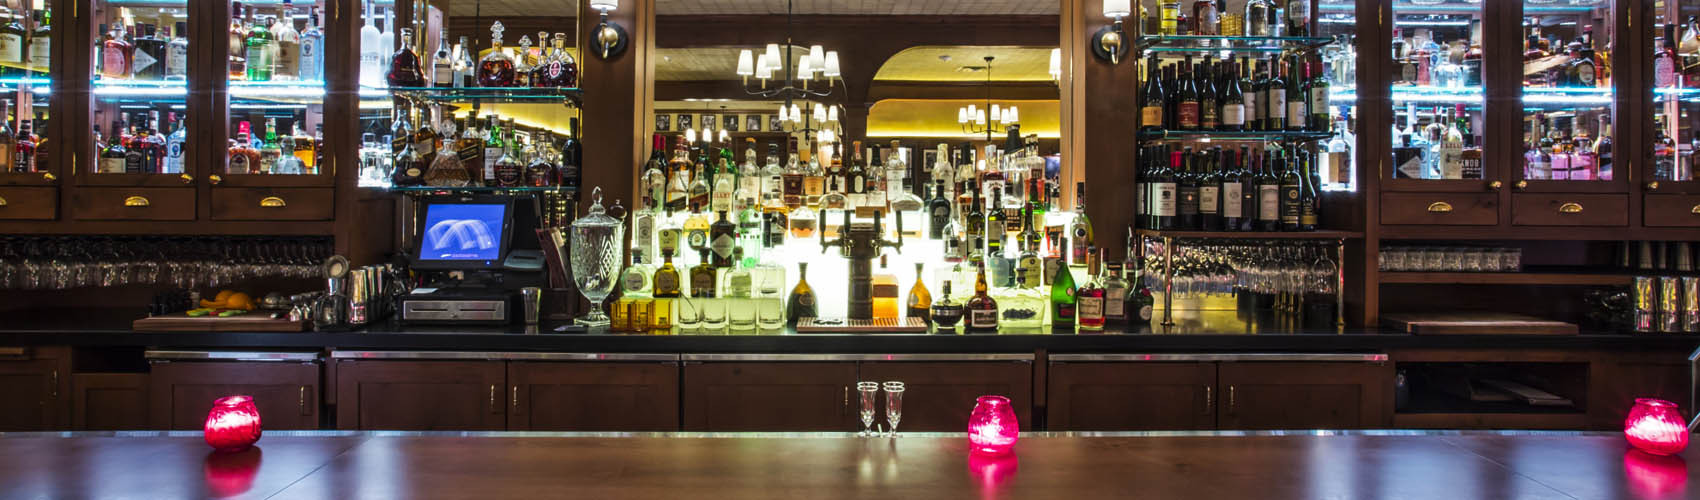 bottles of alcohol displayed behind the bar